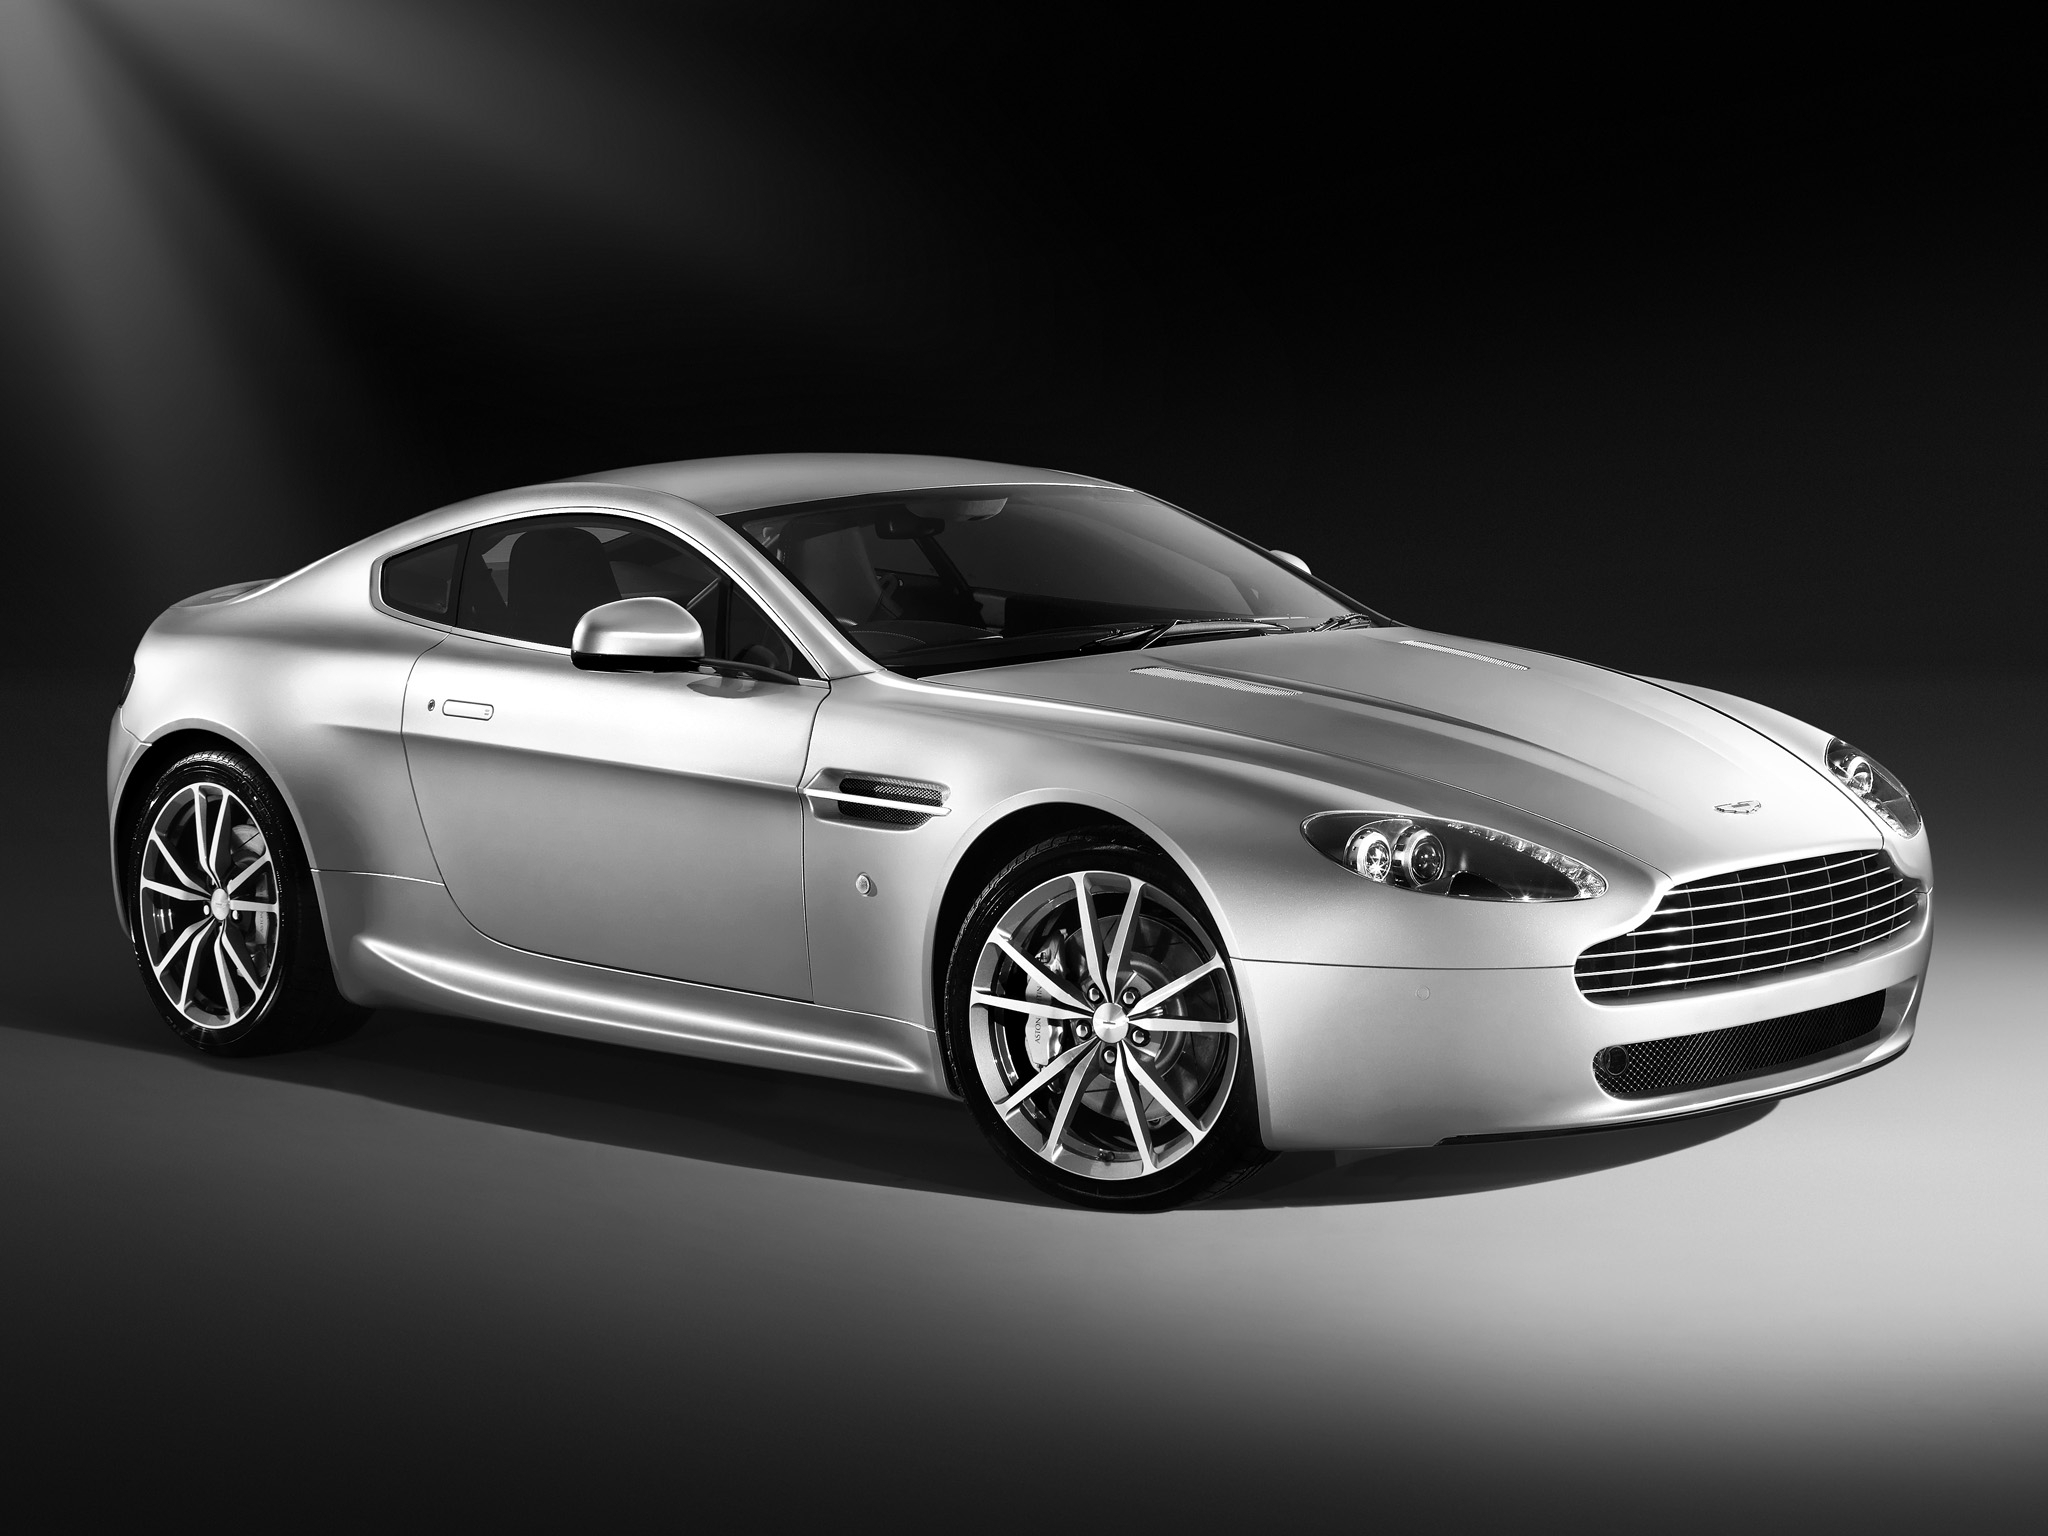 2008 aston martin v8 vantage information and photos zombiedrive. Cars Review. Best American Auto & Cars Review